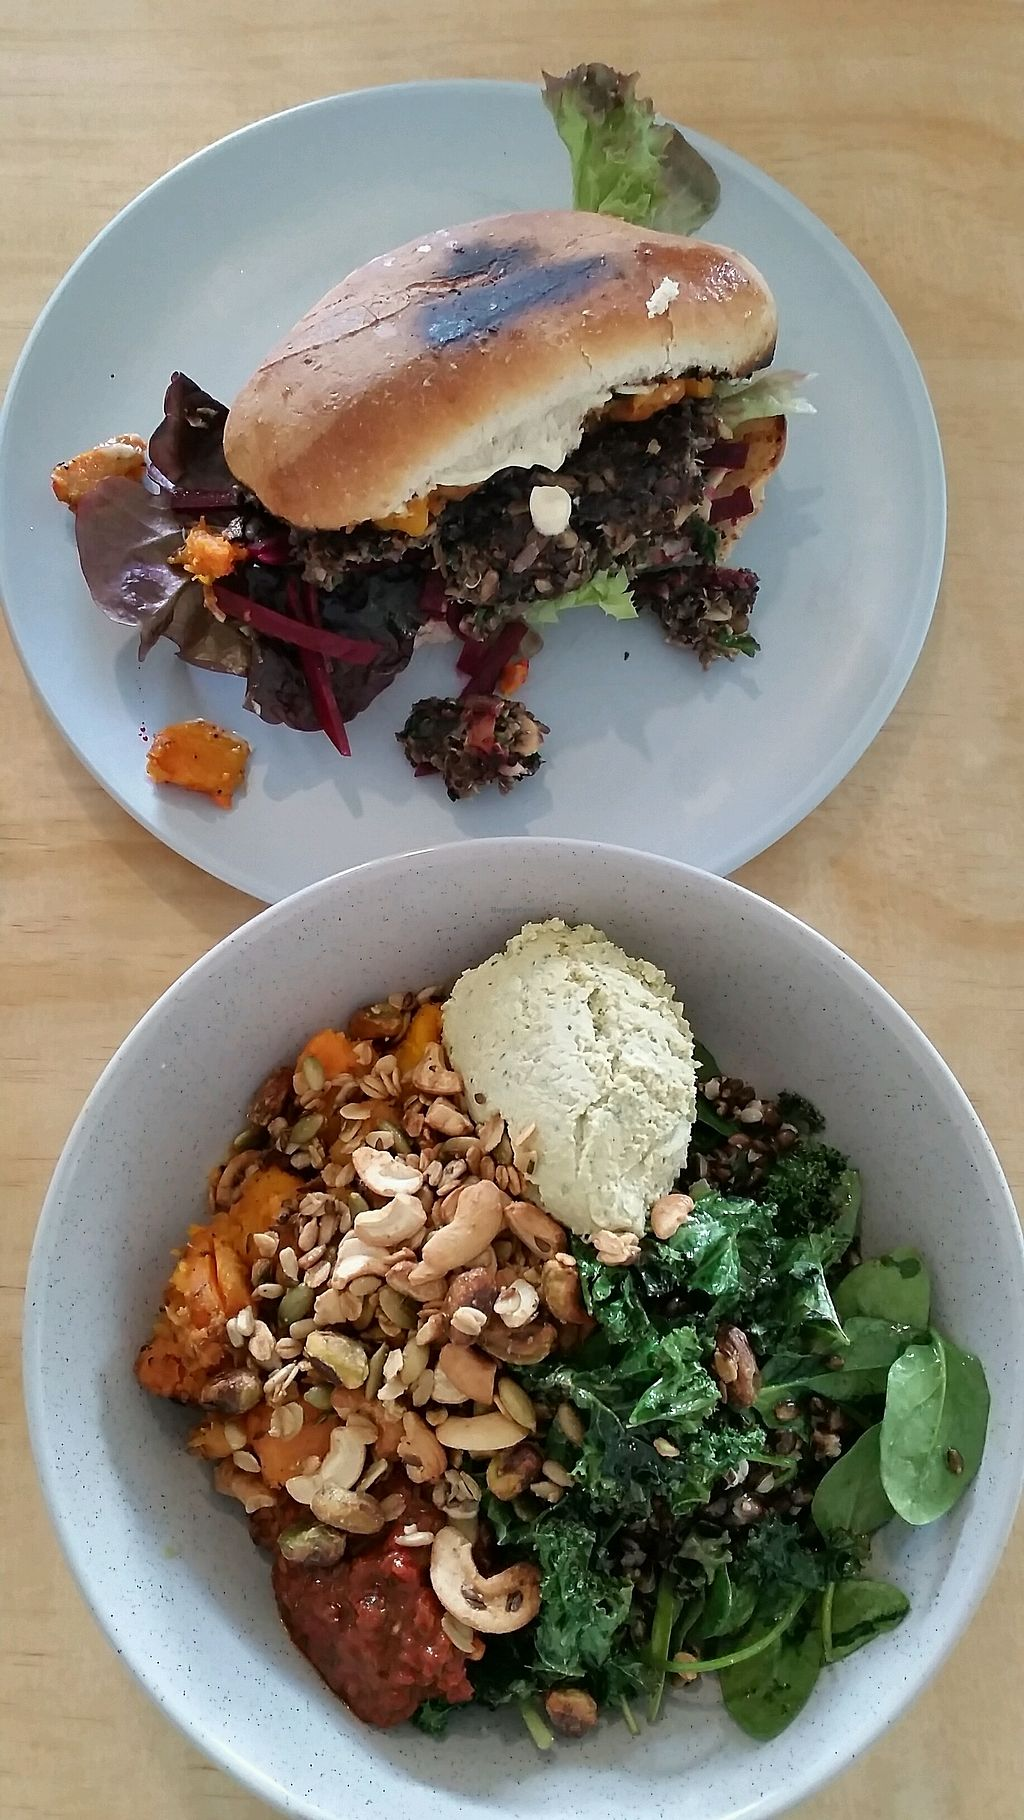 """Photo of Sunday Cantina  by <a href=""""/members/profile/AndyTheVWDude"""">AndyTheVWDude</a> <br/>Mushroom & Lentil Burger/ Pumpkin & Kumara Fry Vegan Bowl ~ Yum! <br/> September 11, 2017  - <a href='/contact/abuse/image/95357/303171'>Report</a>"""